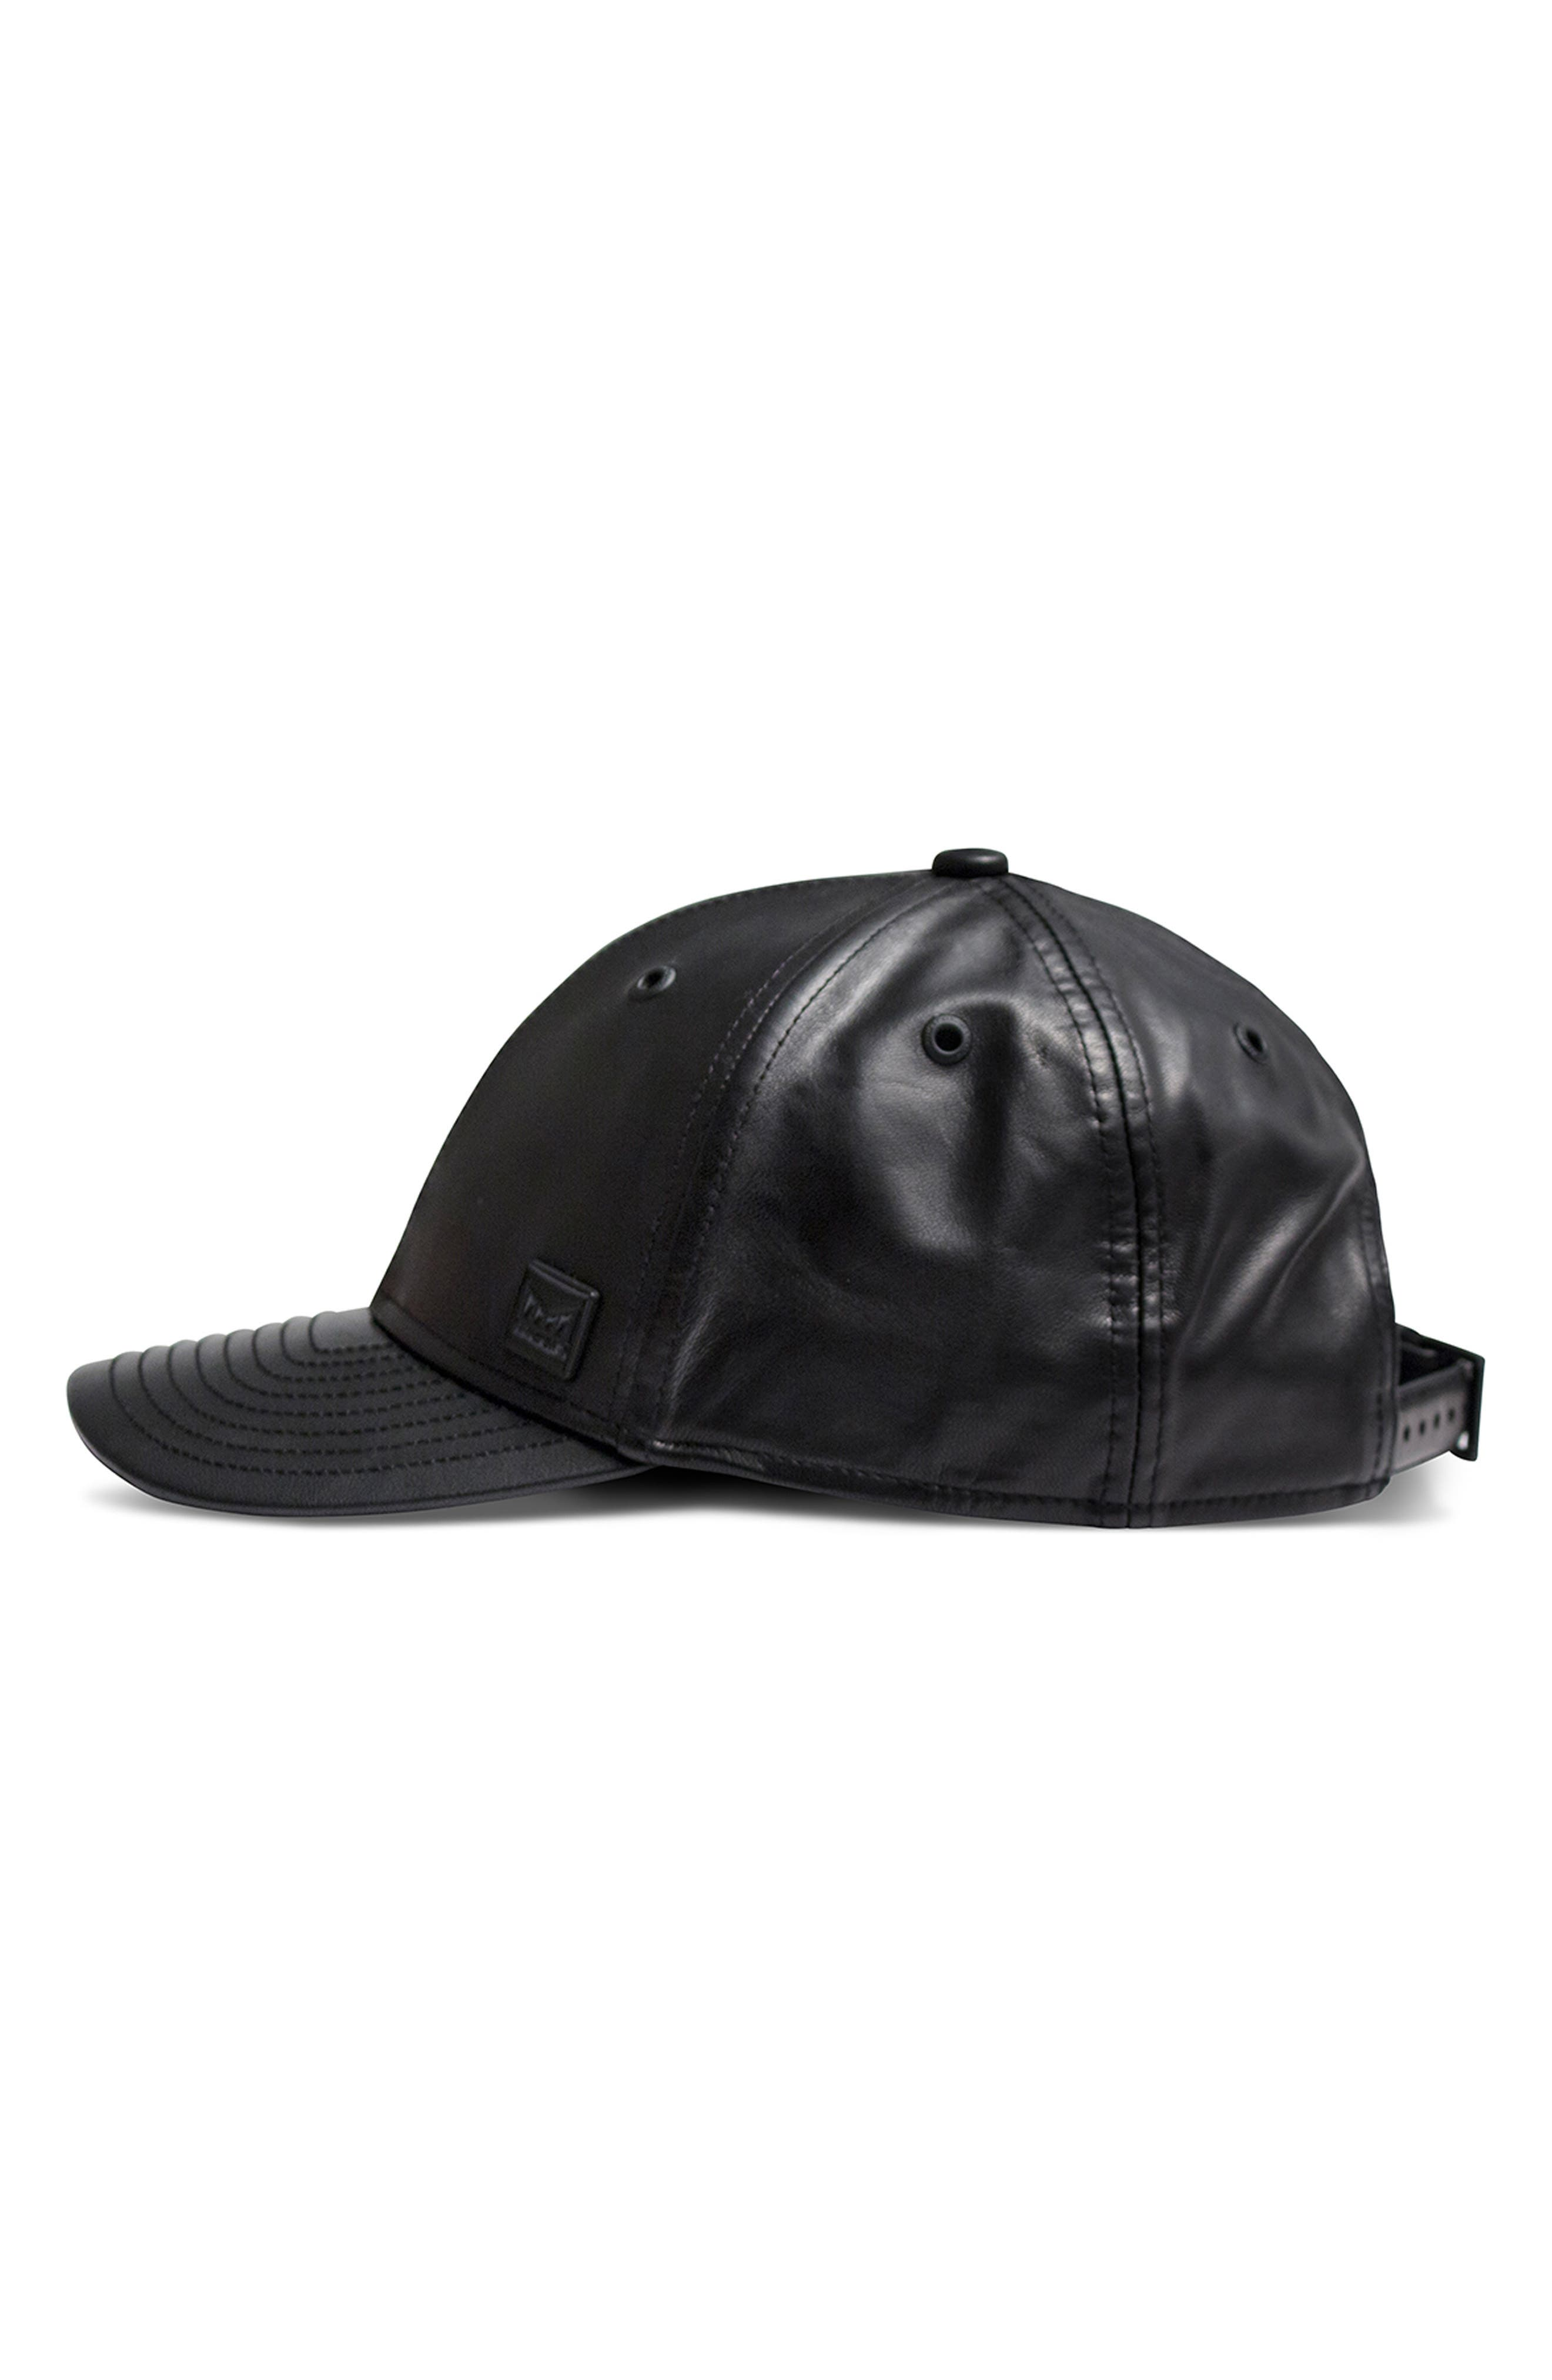 Voyage Elite Leather Ball Cap,                             Alternate thumbnail 4, color,                             BLACK